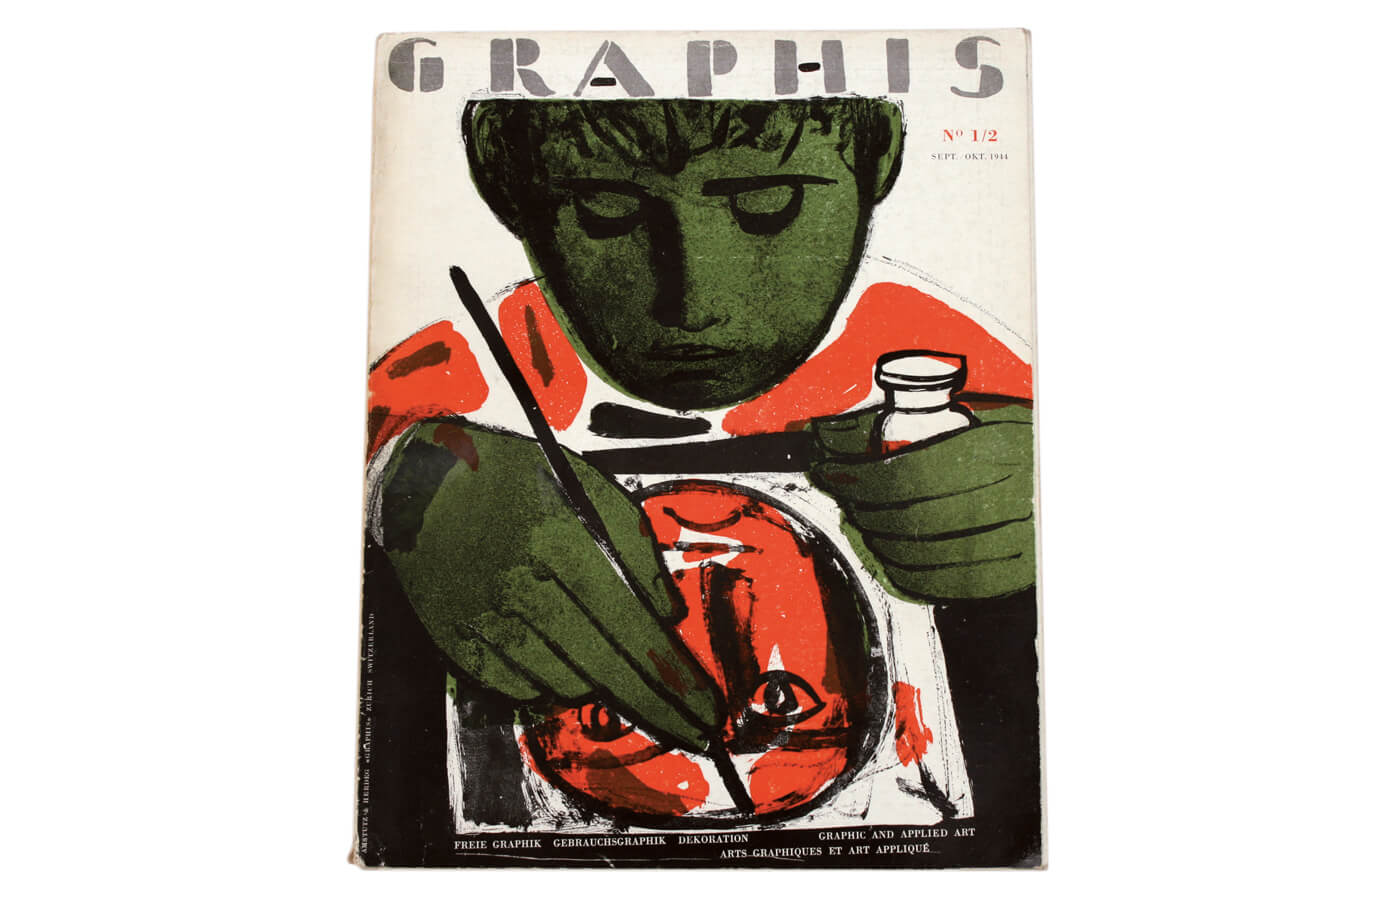 Graphis #1-2